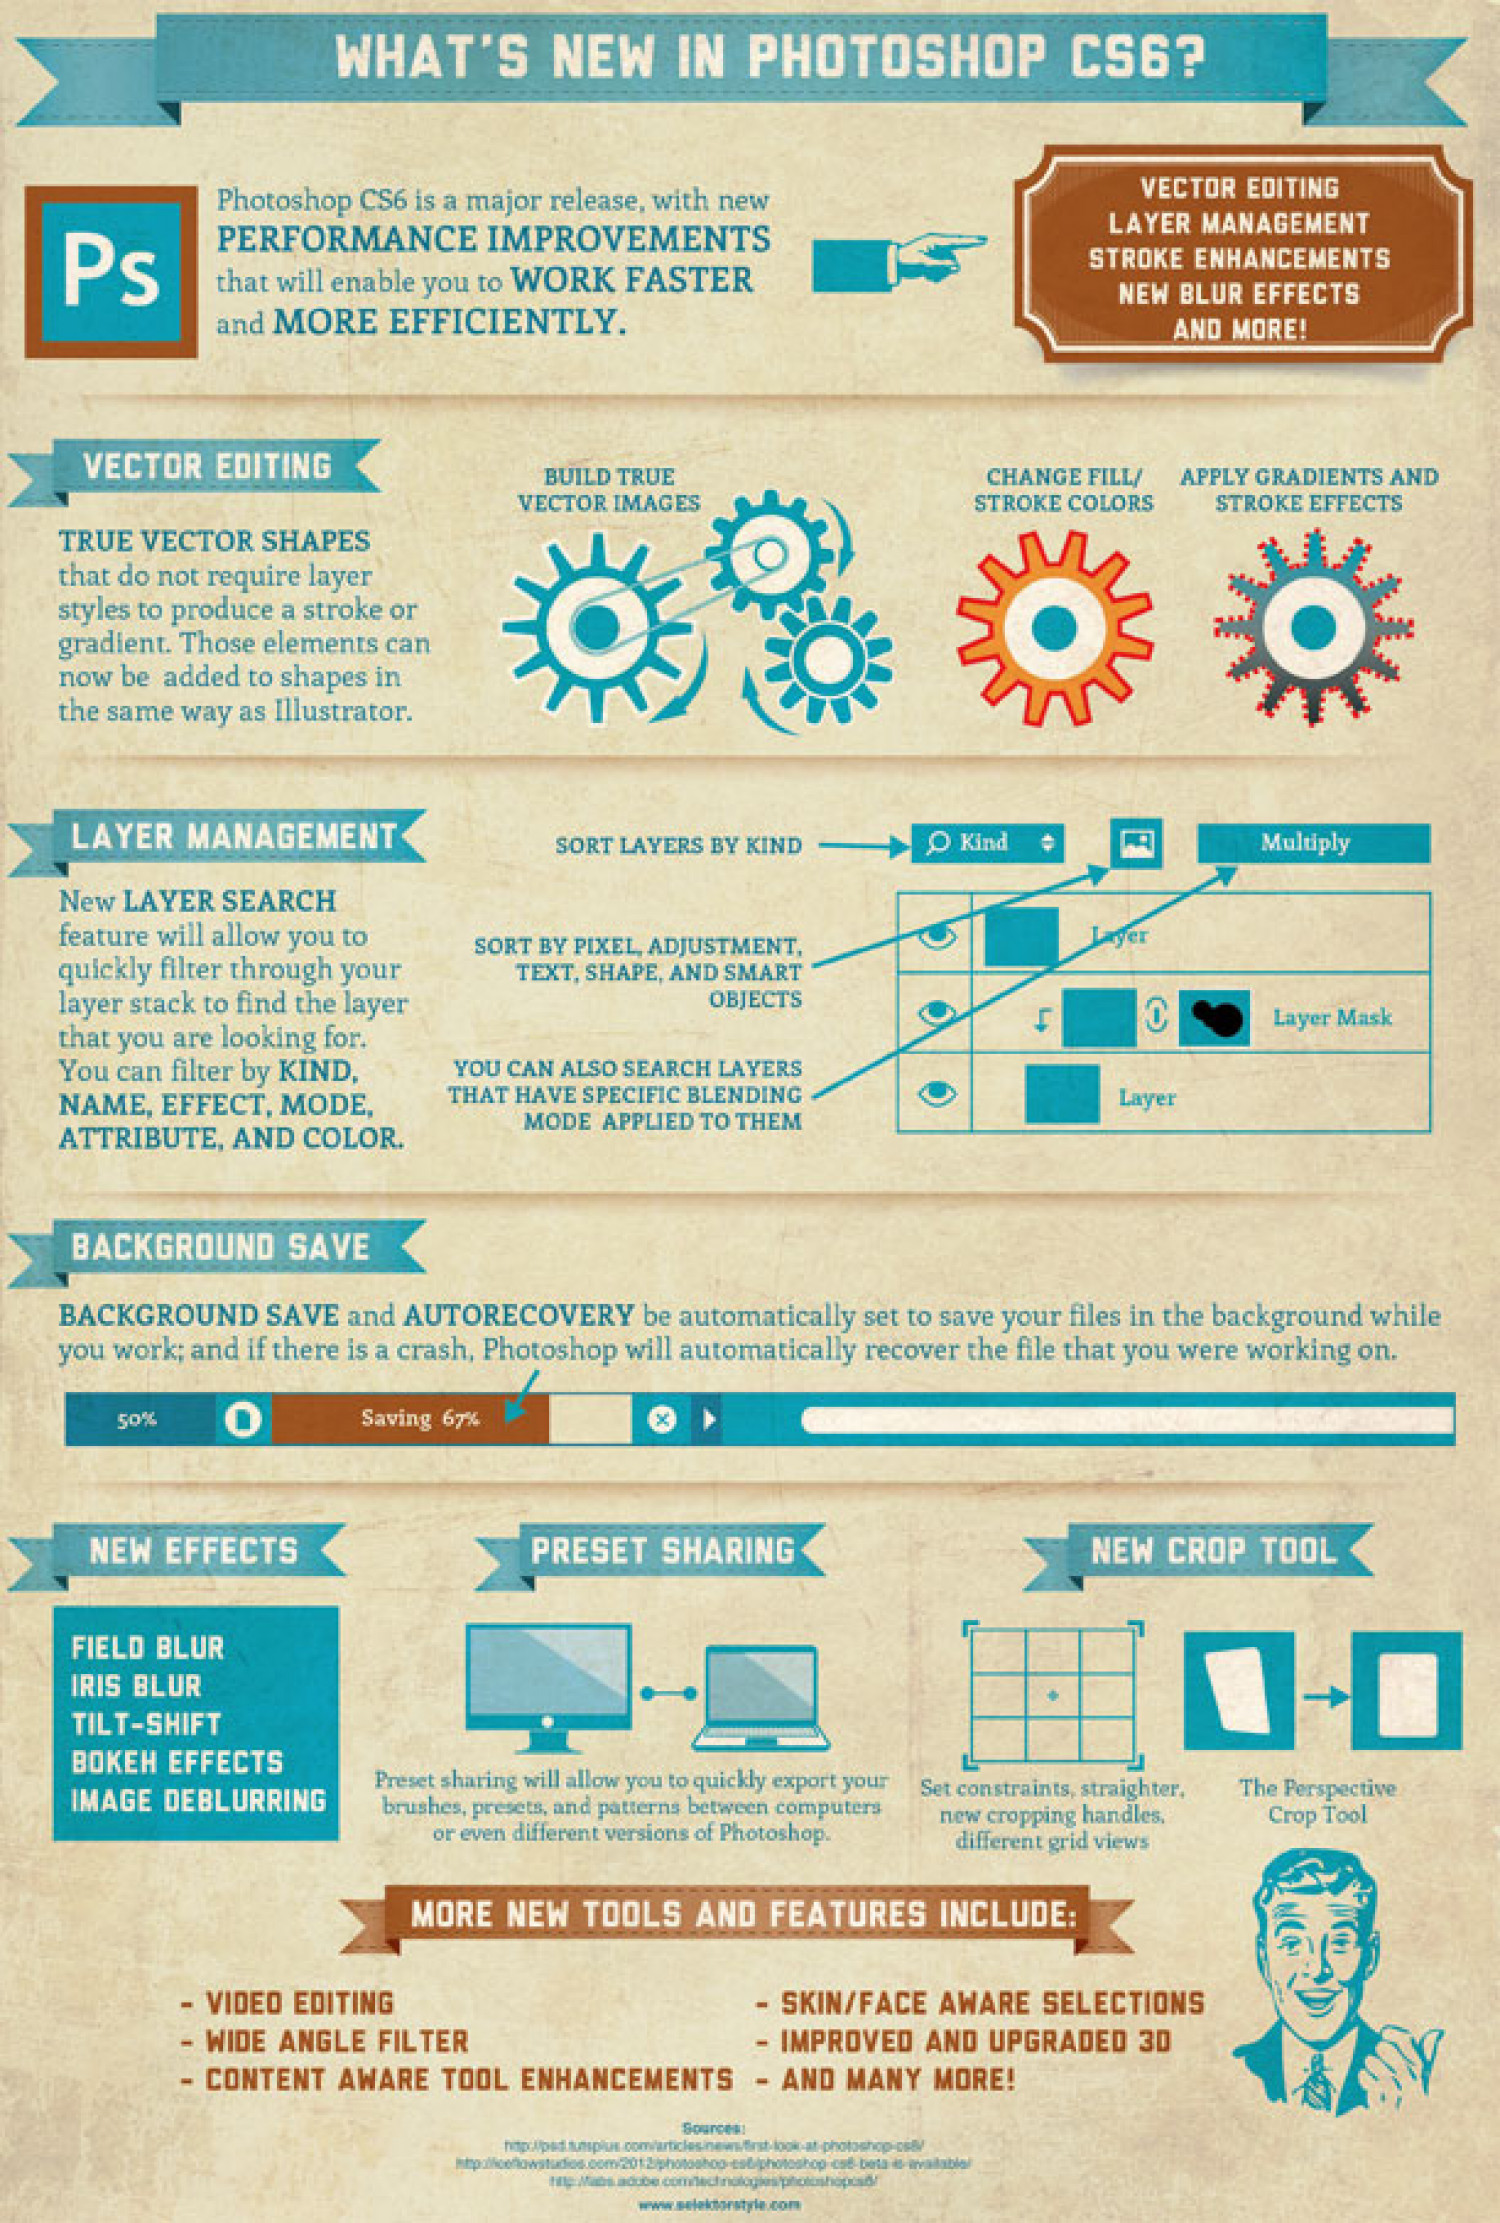 New Features in Photoshop CS6 Infographic